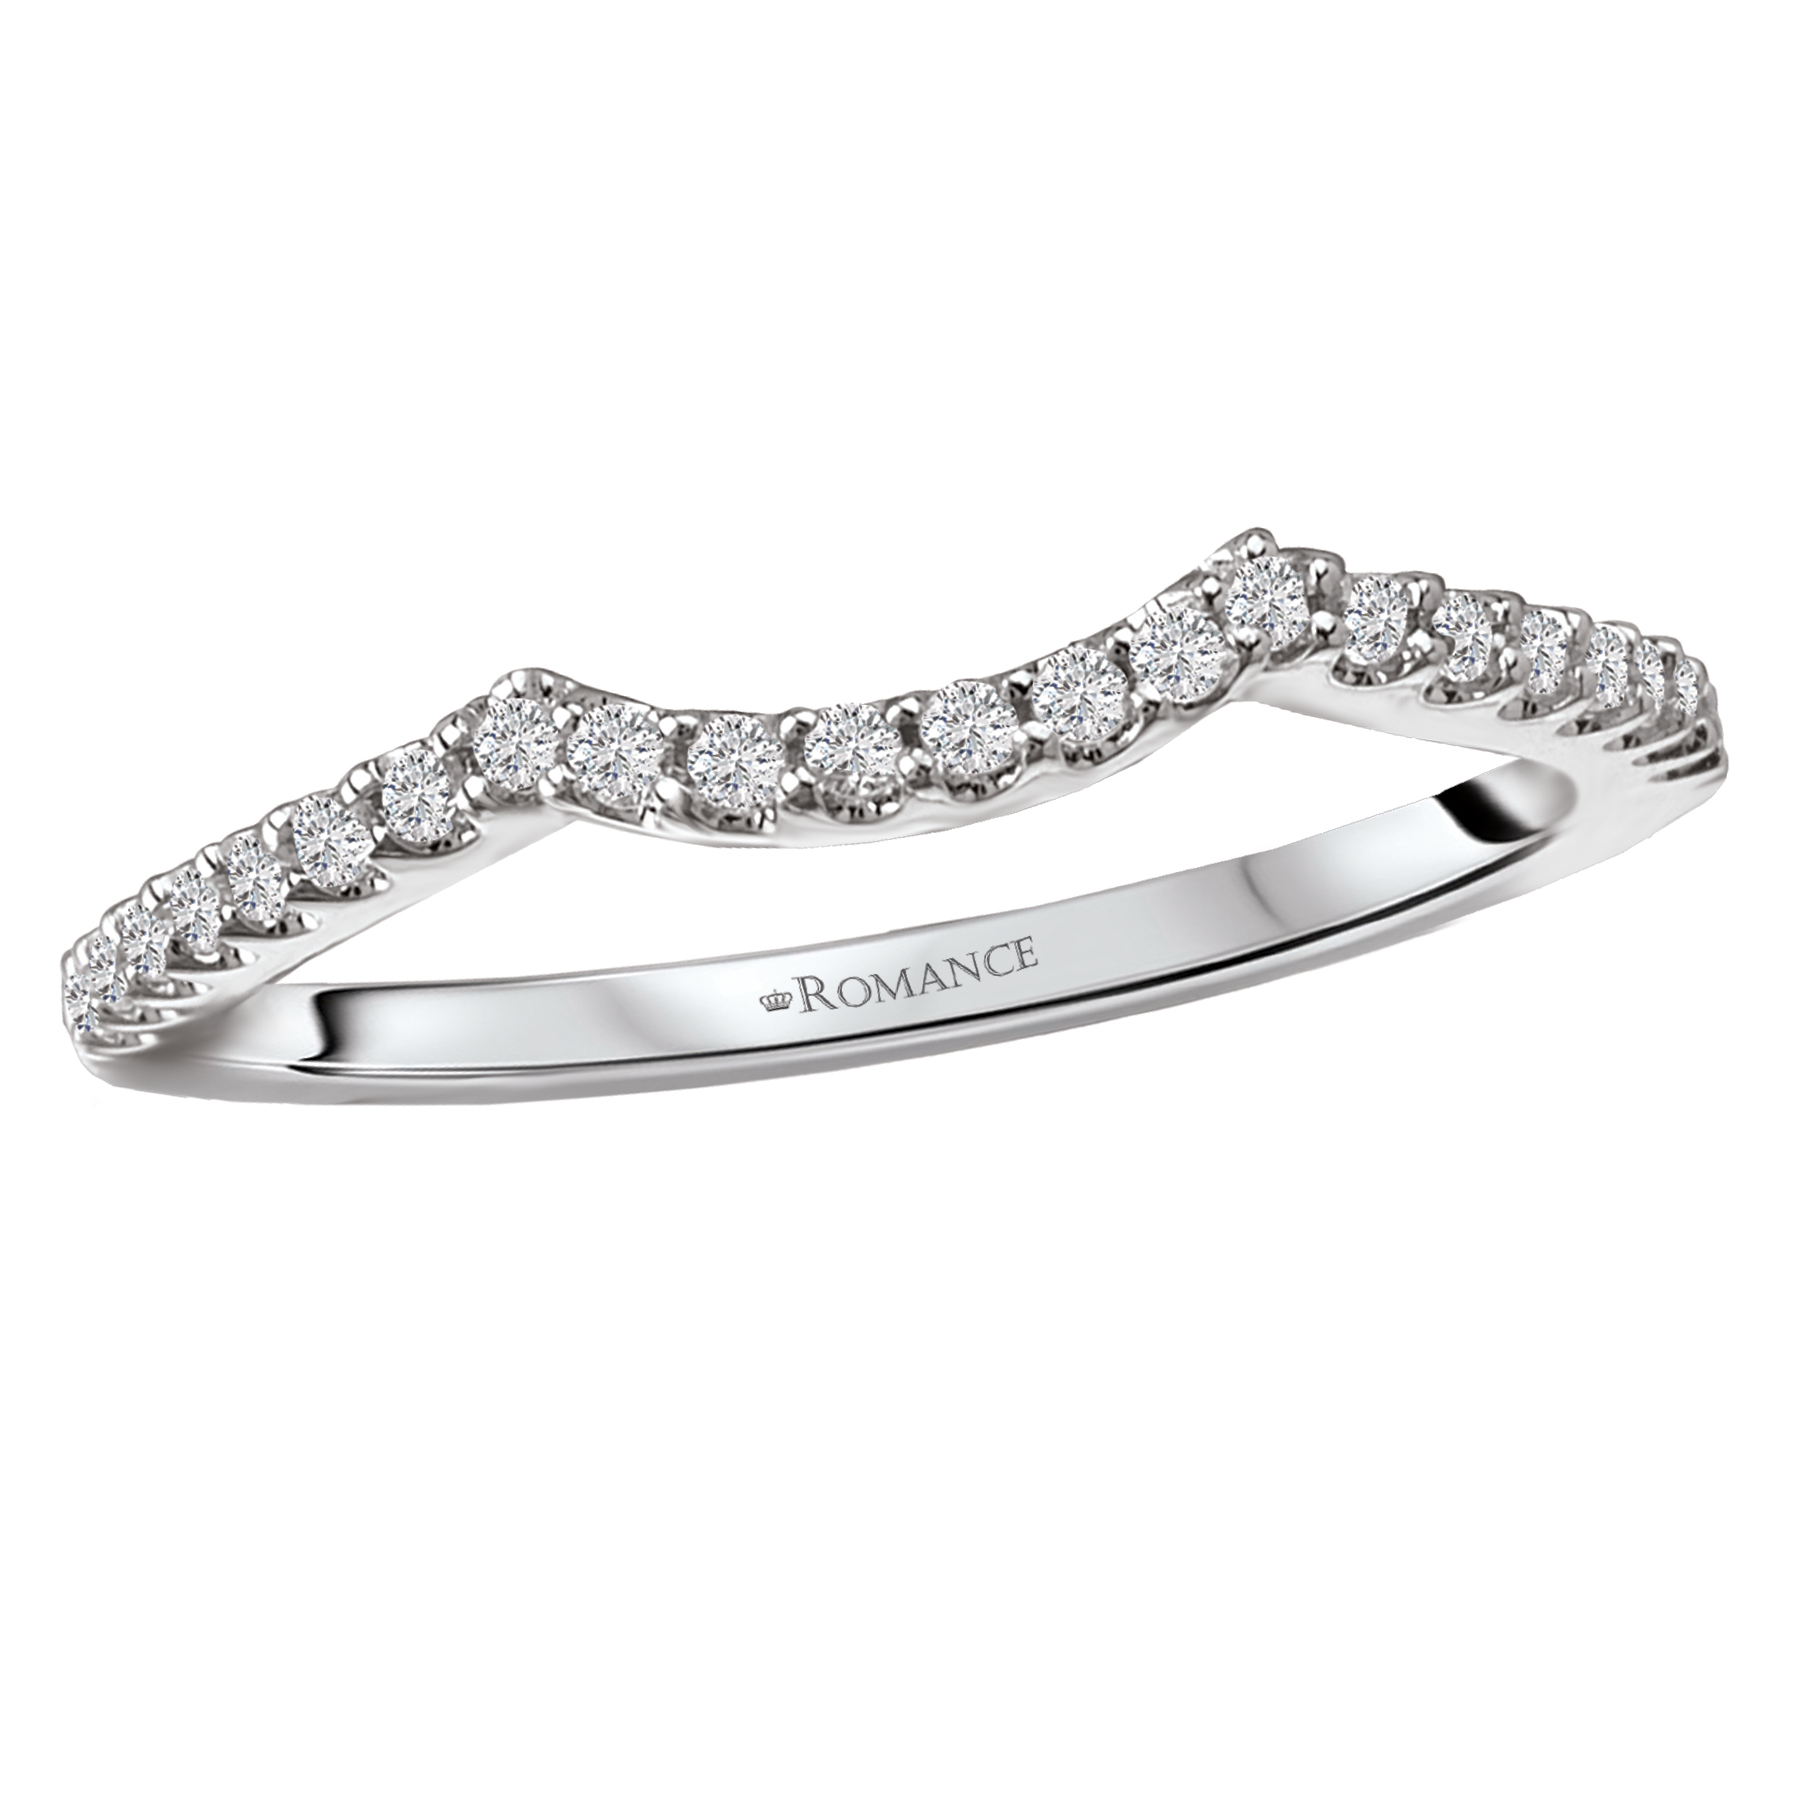 Romance Wedding Bands 117666-100W product image